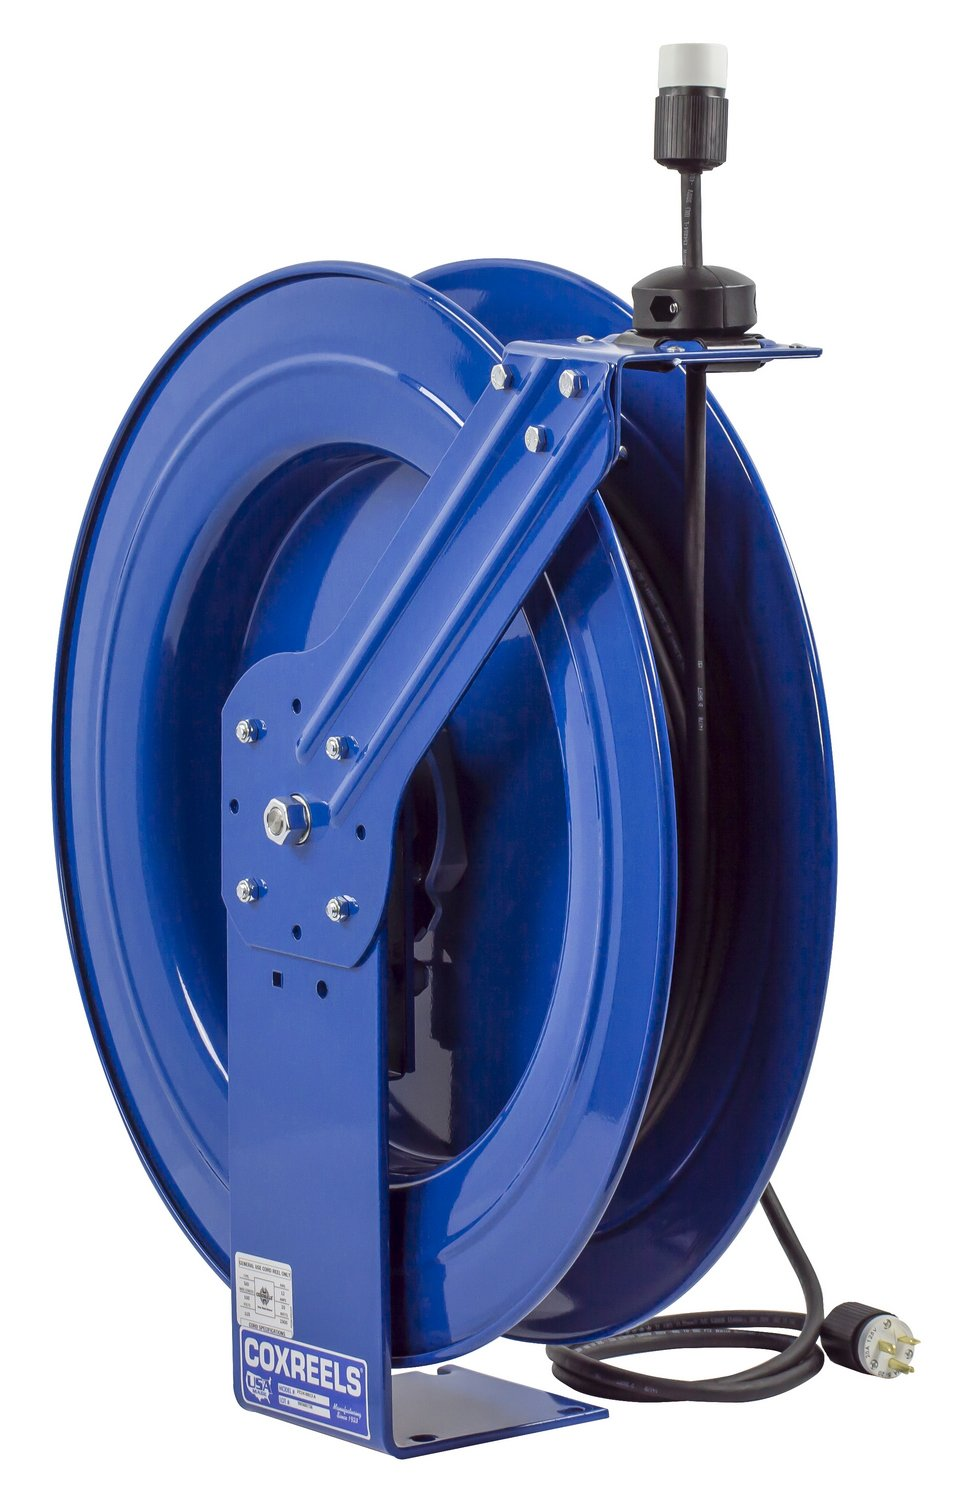 Coxreels PC24-0012-A Power Cord Spring Rewind Reels: Single Industrial Receptacle, 100' cord, 12 AWG